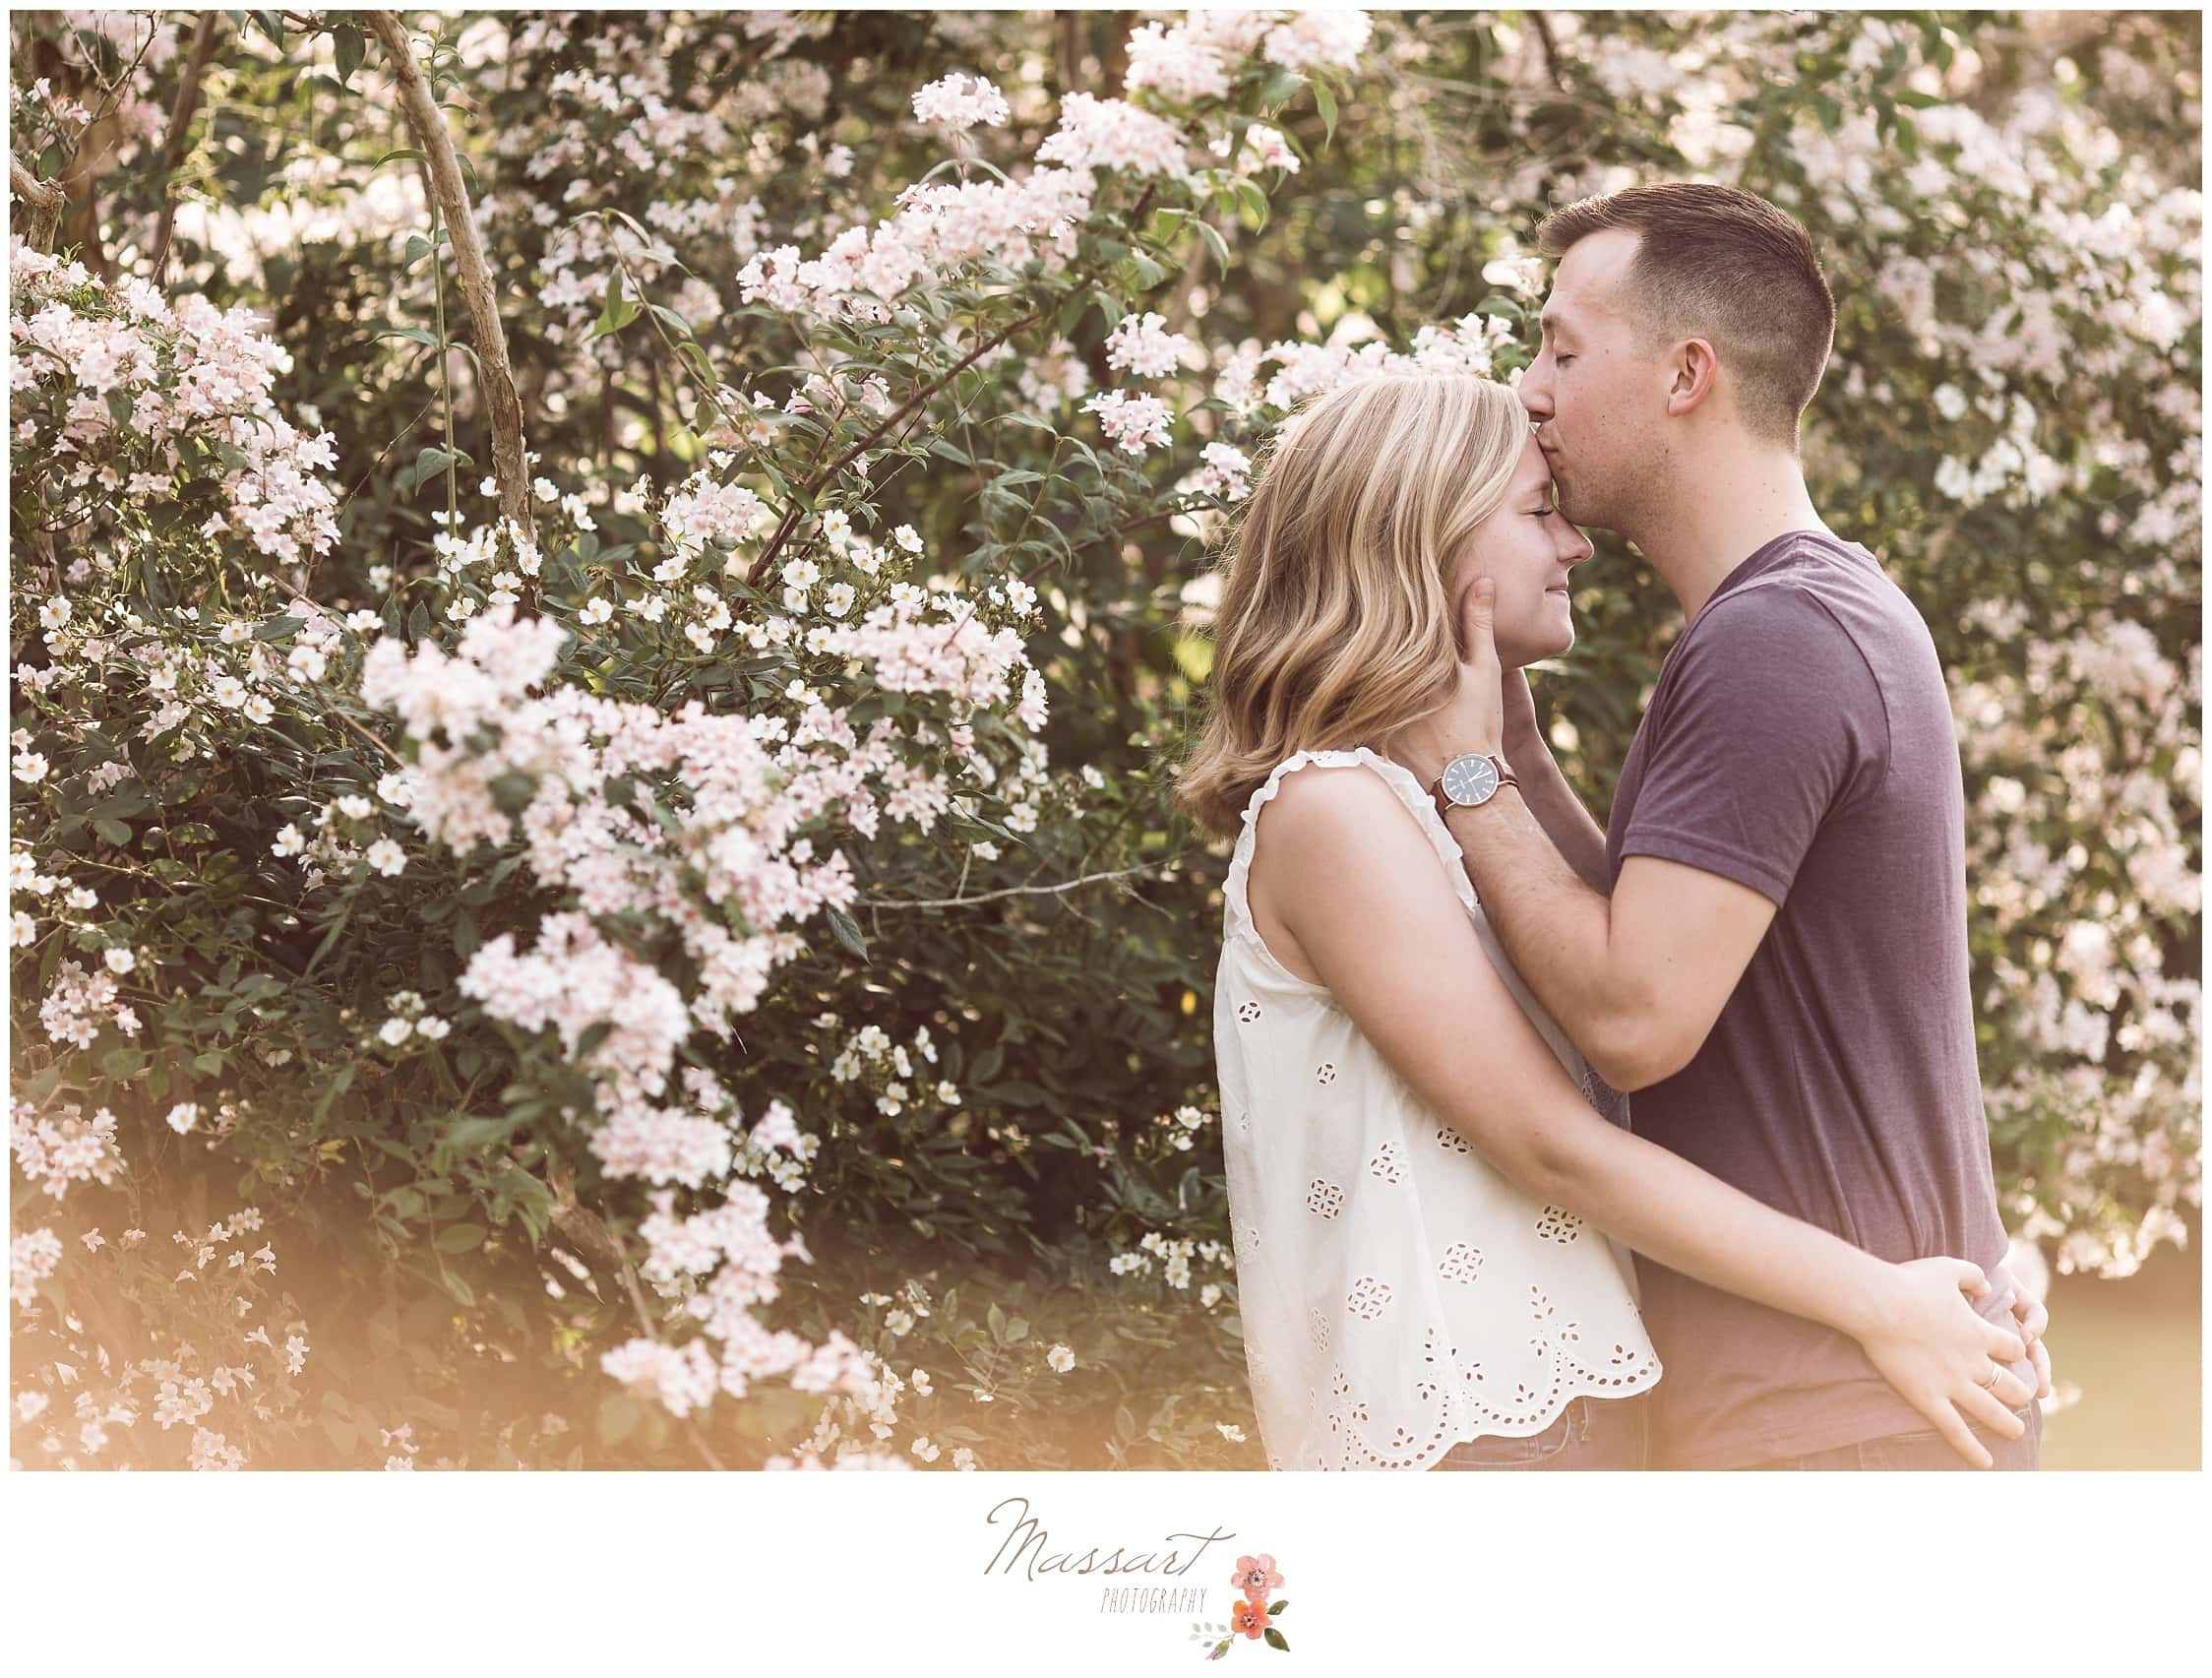 Fiance kisses his soon-to-be wife during engagement session photographed by Massart Photography RI